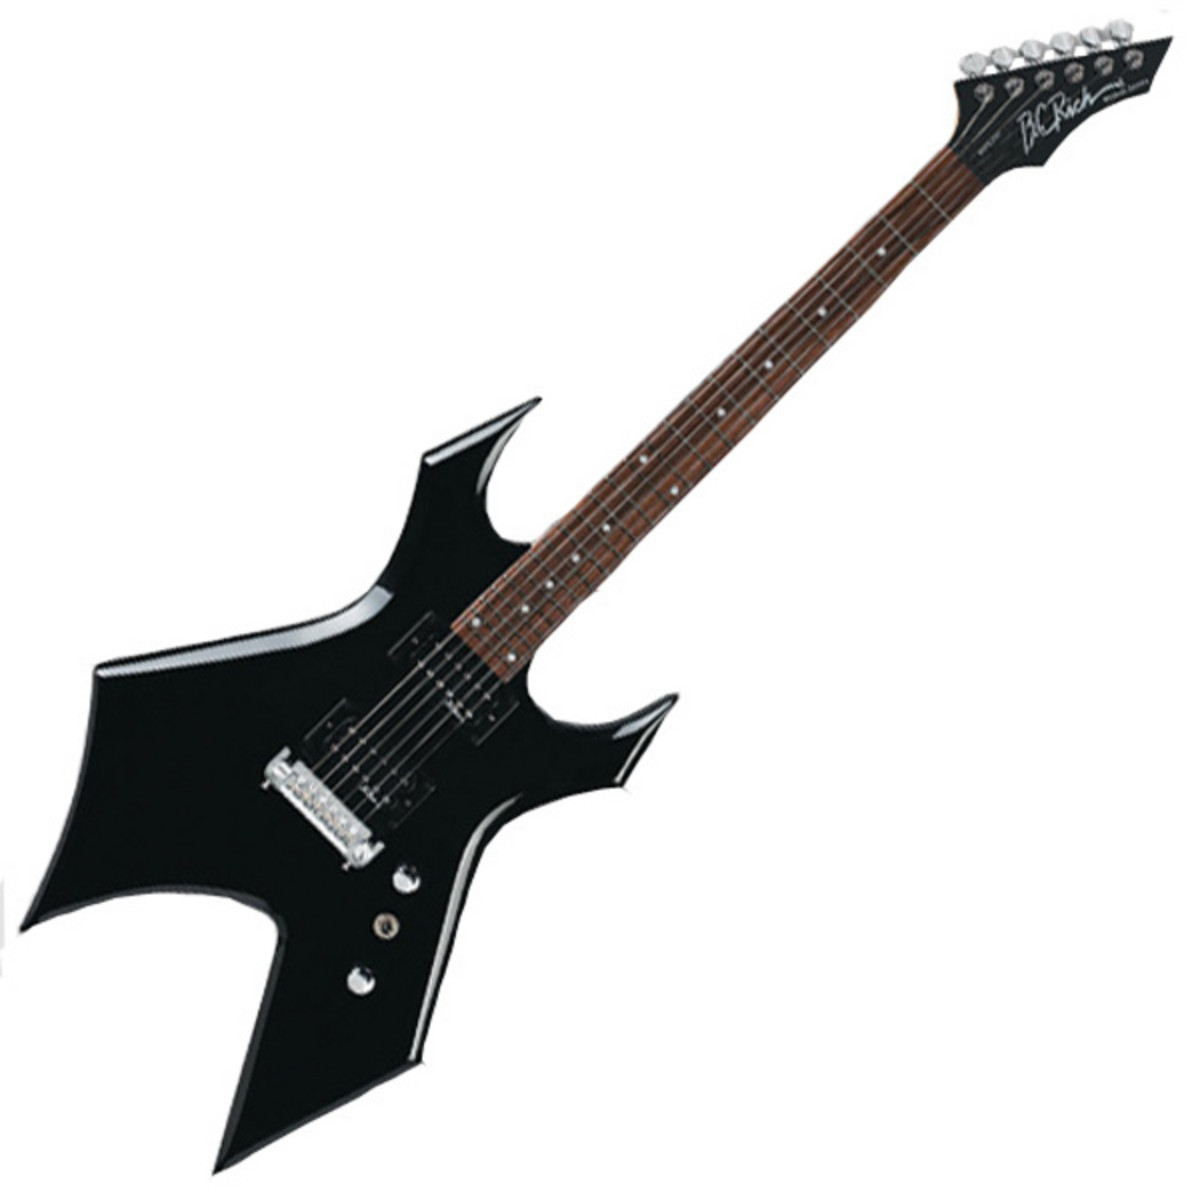 disc bc rich warlock one guitar onyx black at. Black Bedroom Furniture Sets. Home Design Ideas